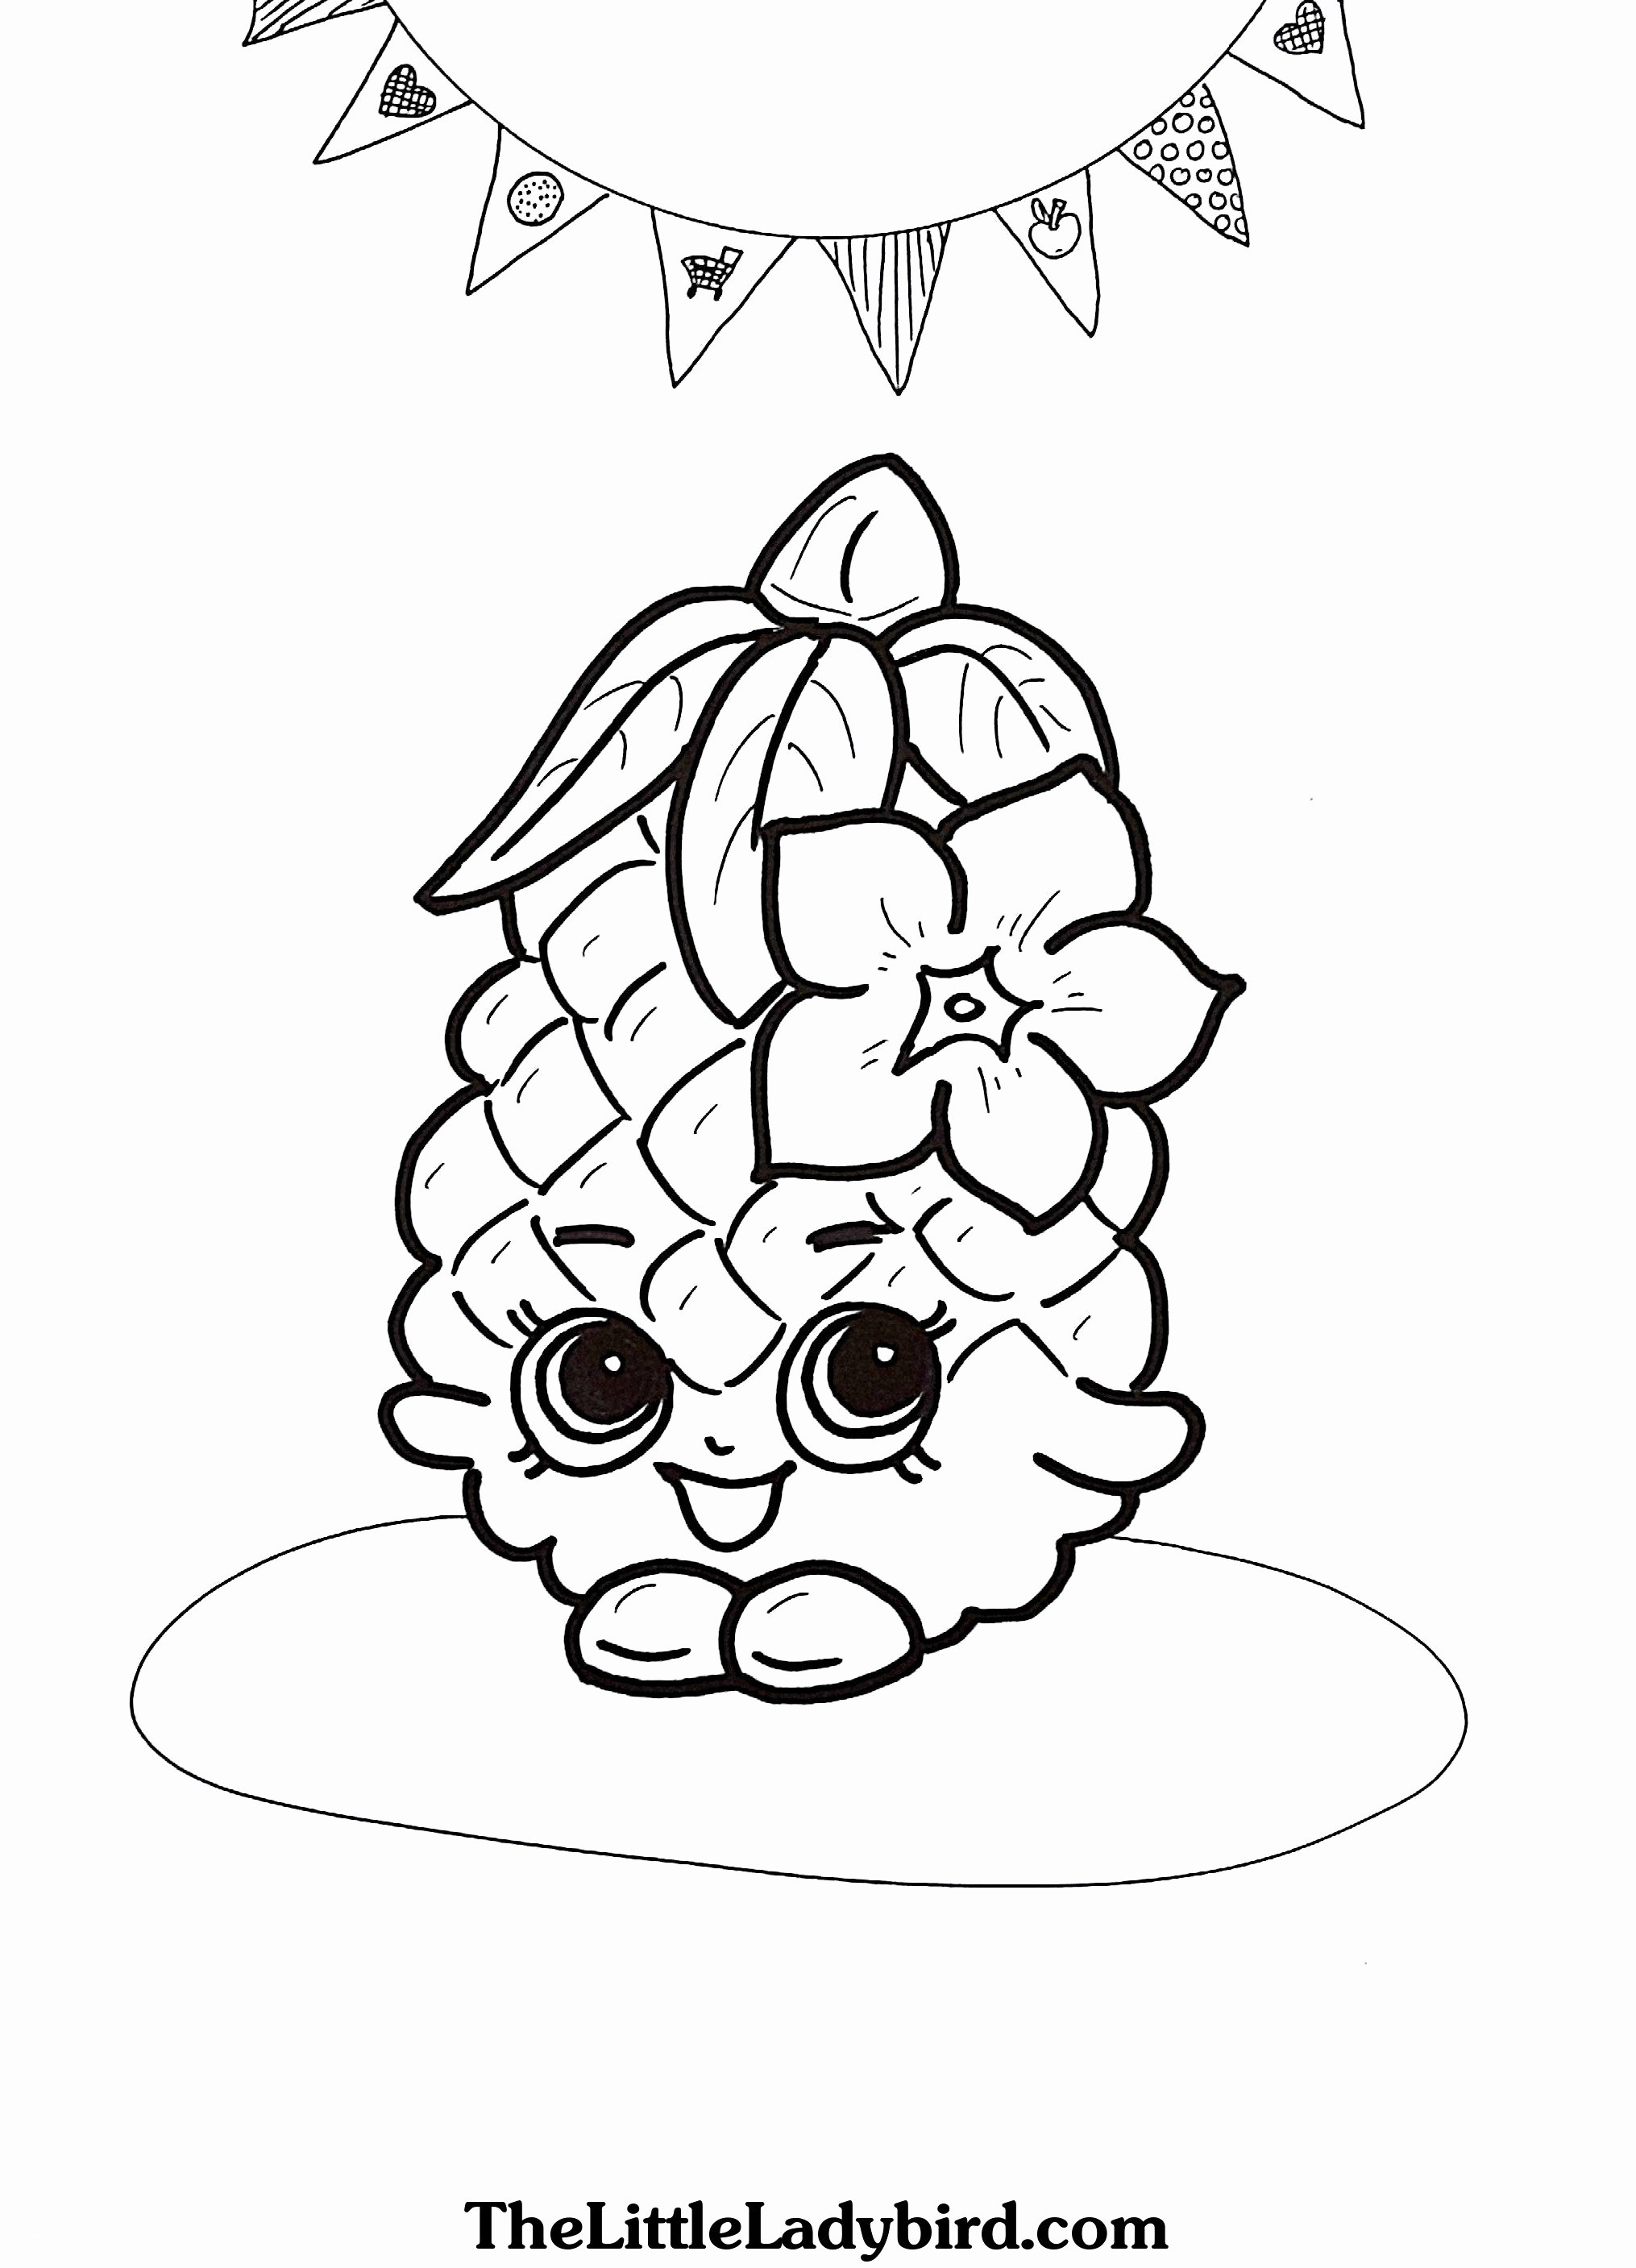 Candle Coloring Page Bold Idea Candle Coloring Pages Advent